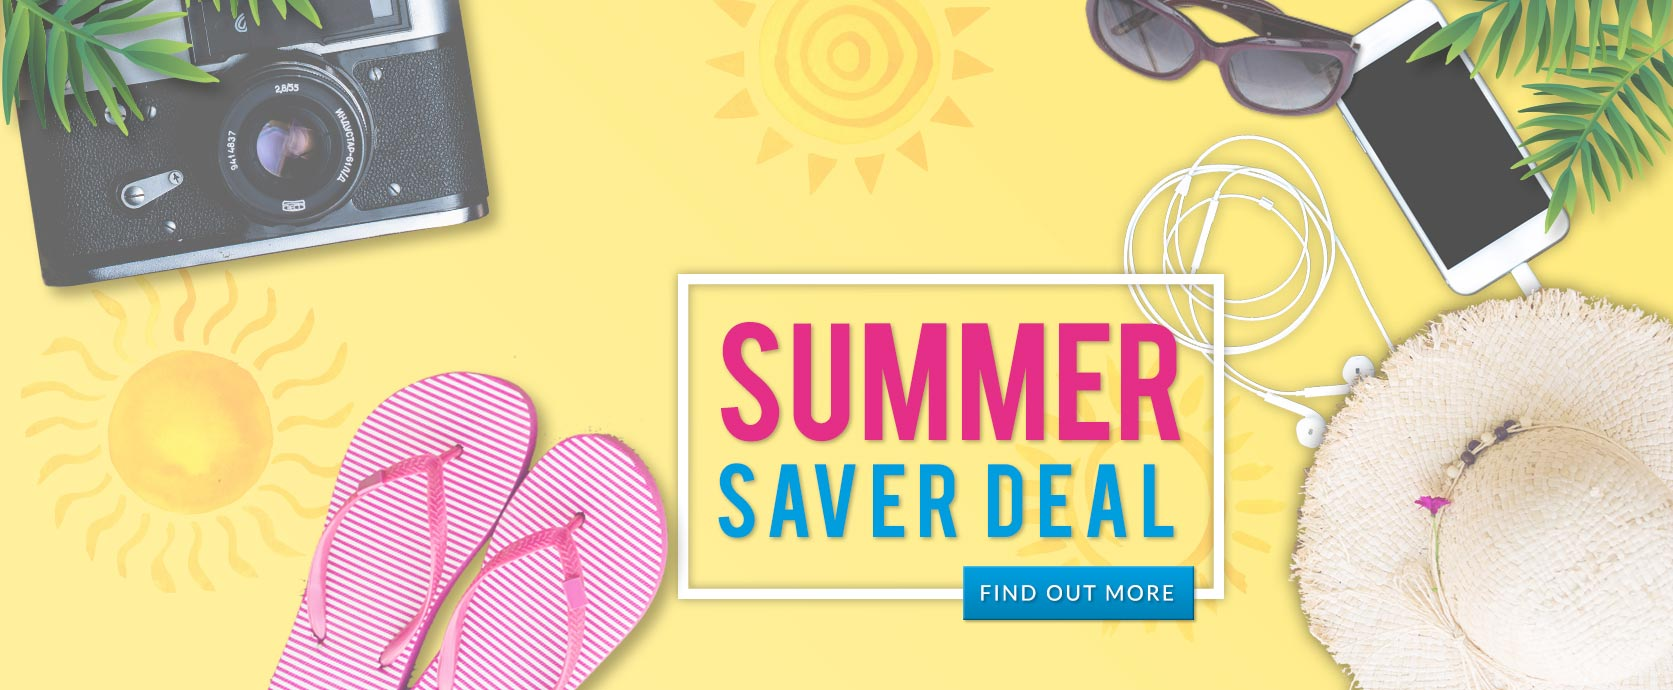 Summer Saver Deal at Columba